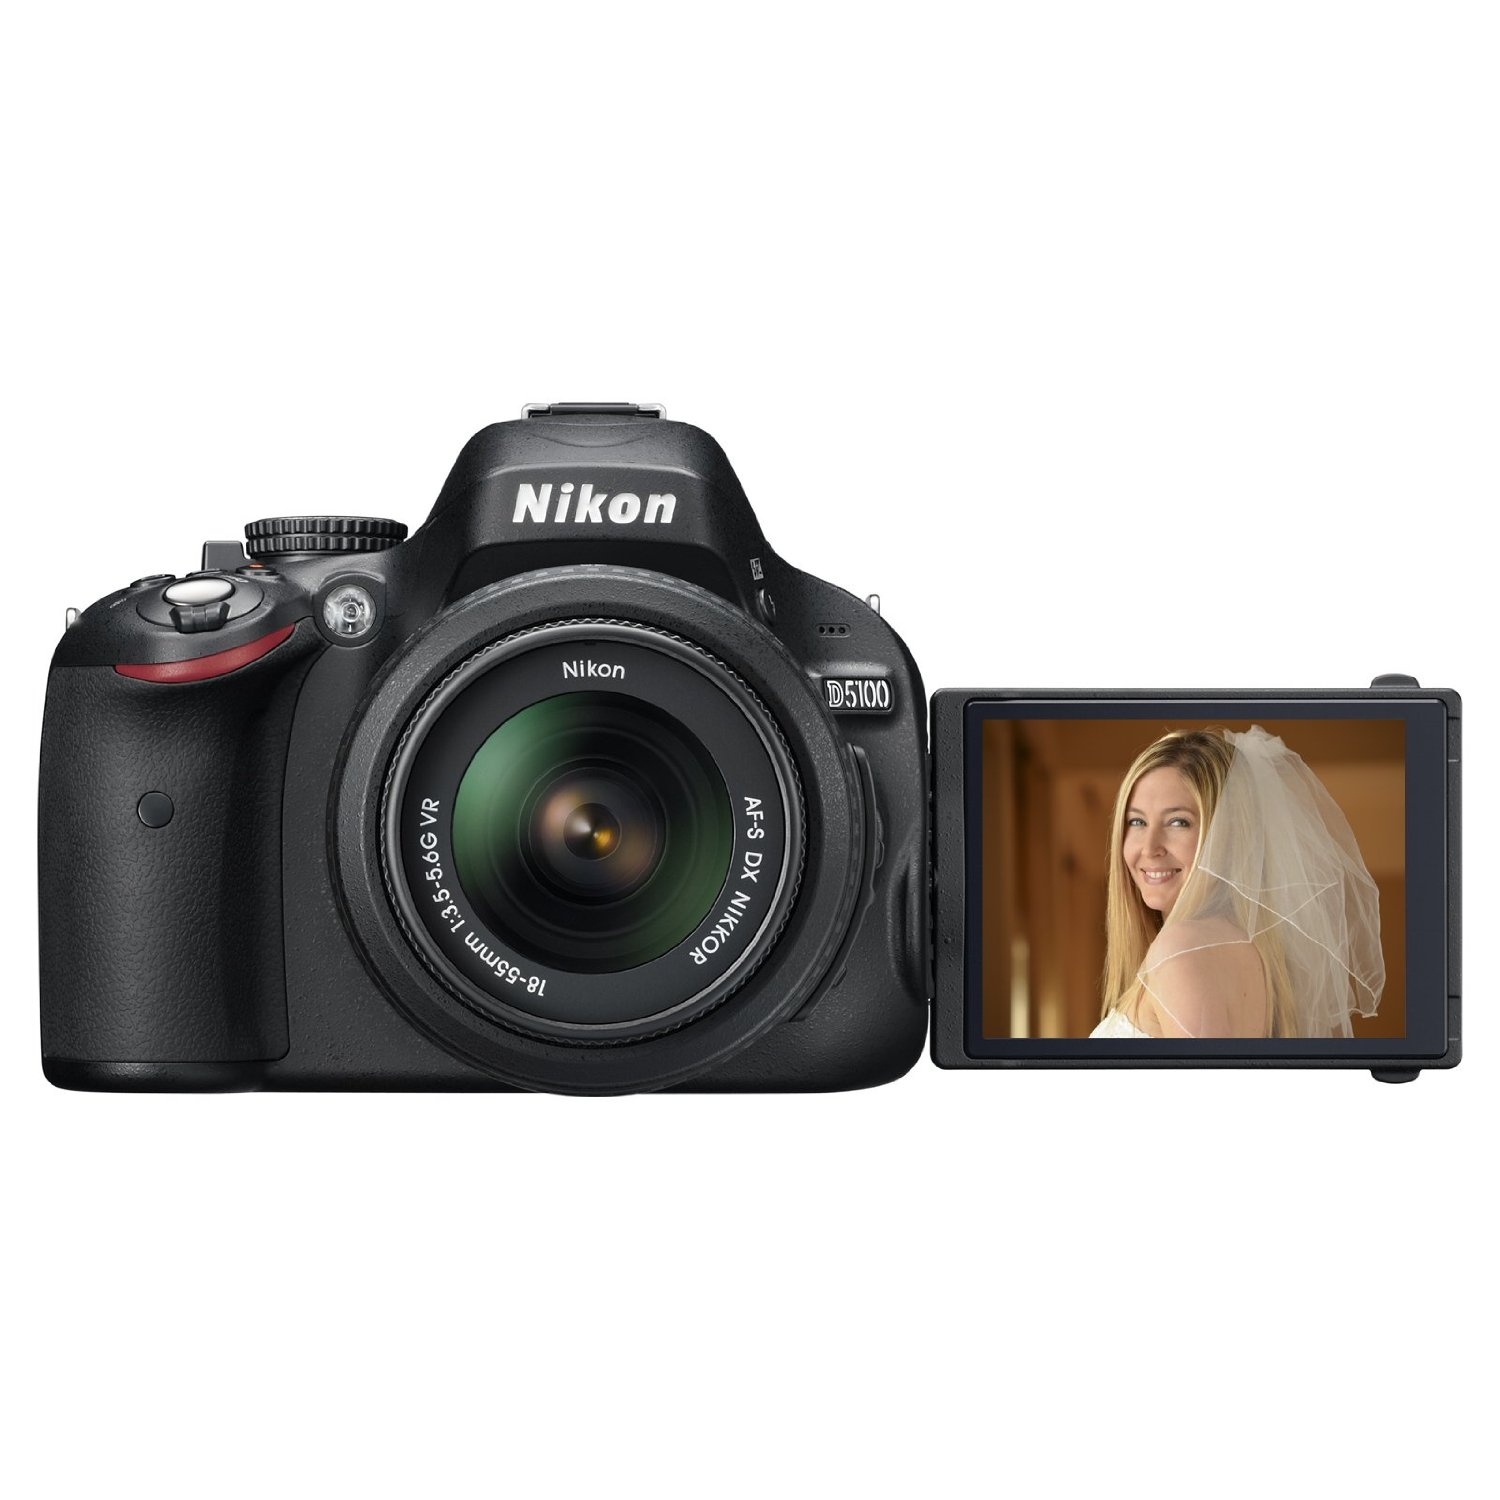 Nikon Camera Reviews - Nikon Cameras - Imaging Resource